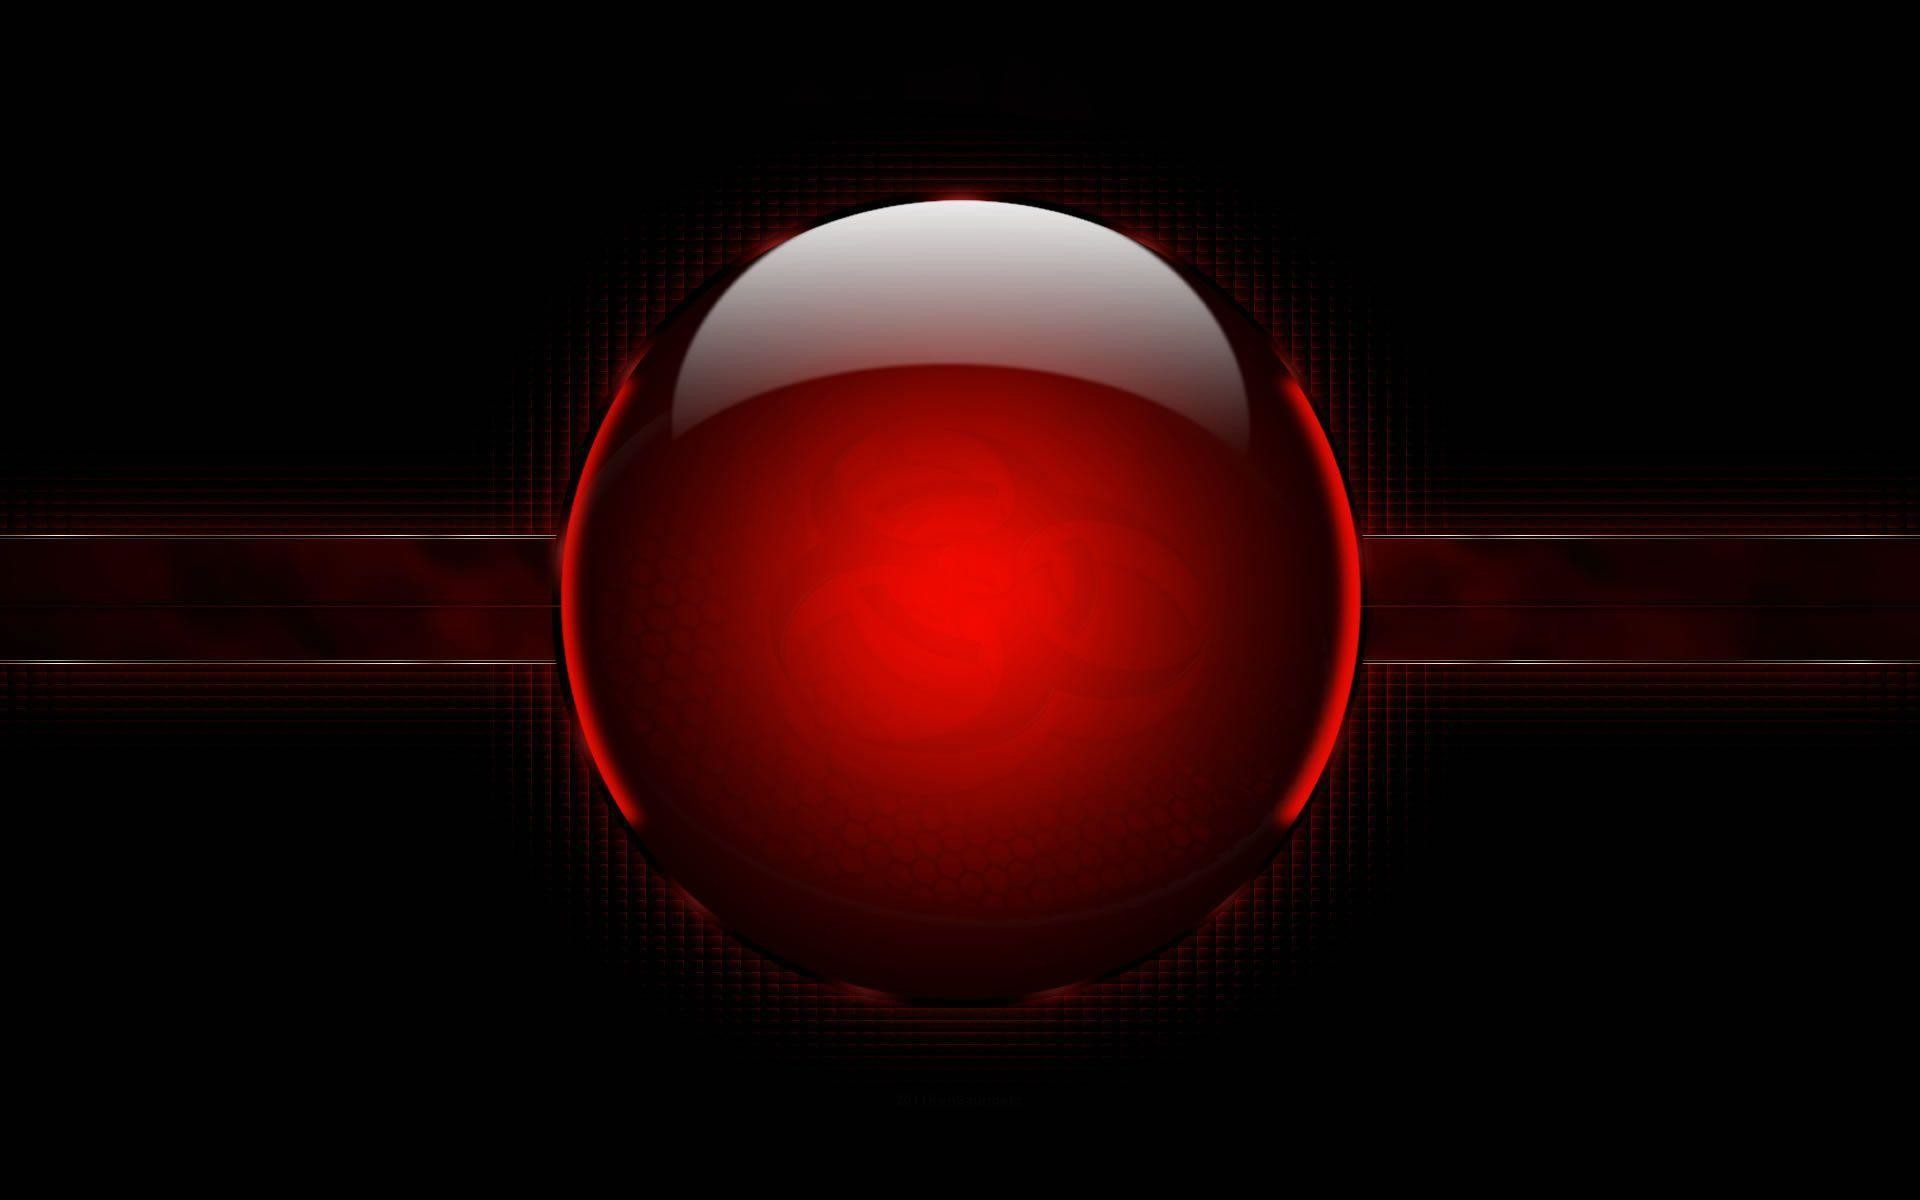 Res: 1920x1200, Alienware Red Color Hd Wallpaper Red Colour Alienware Wallpaper High